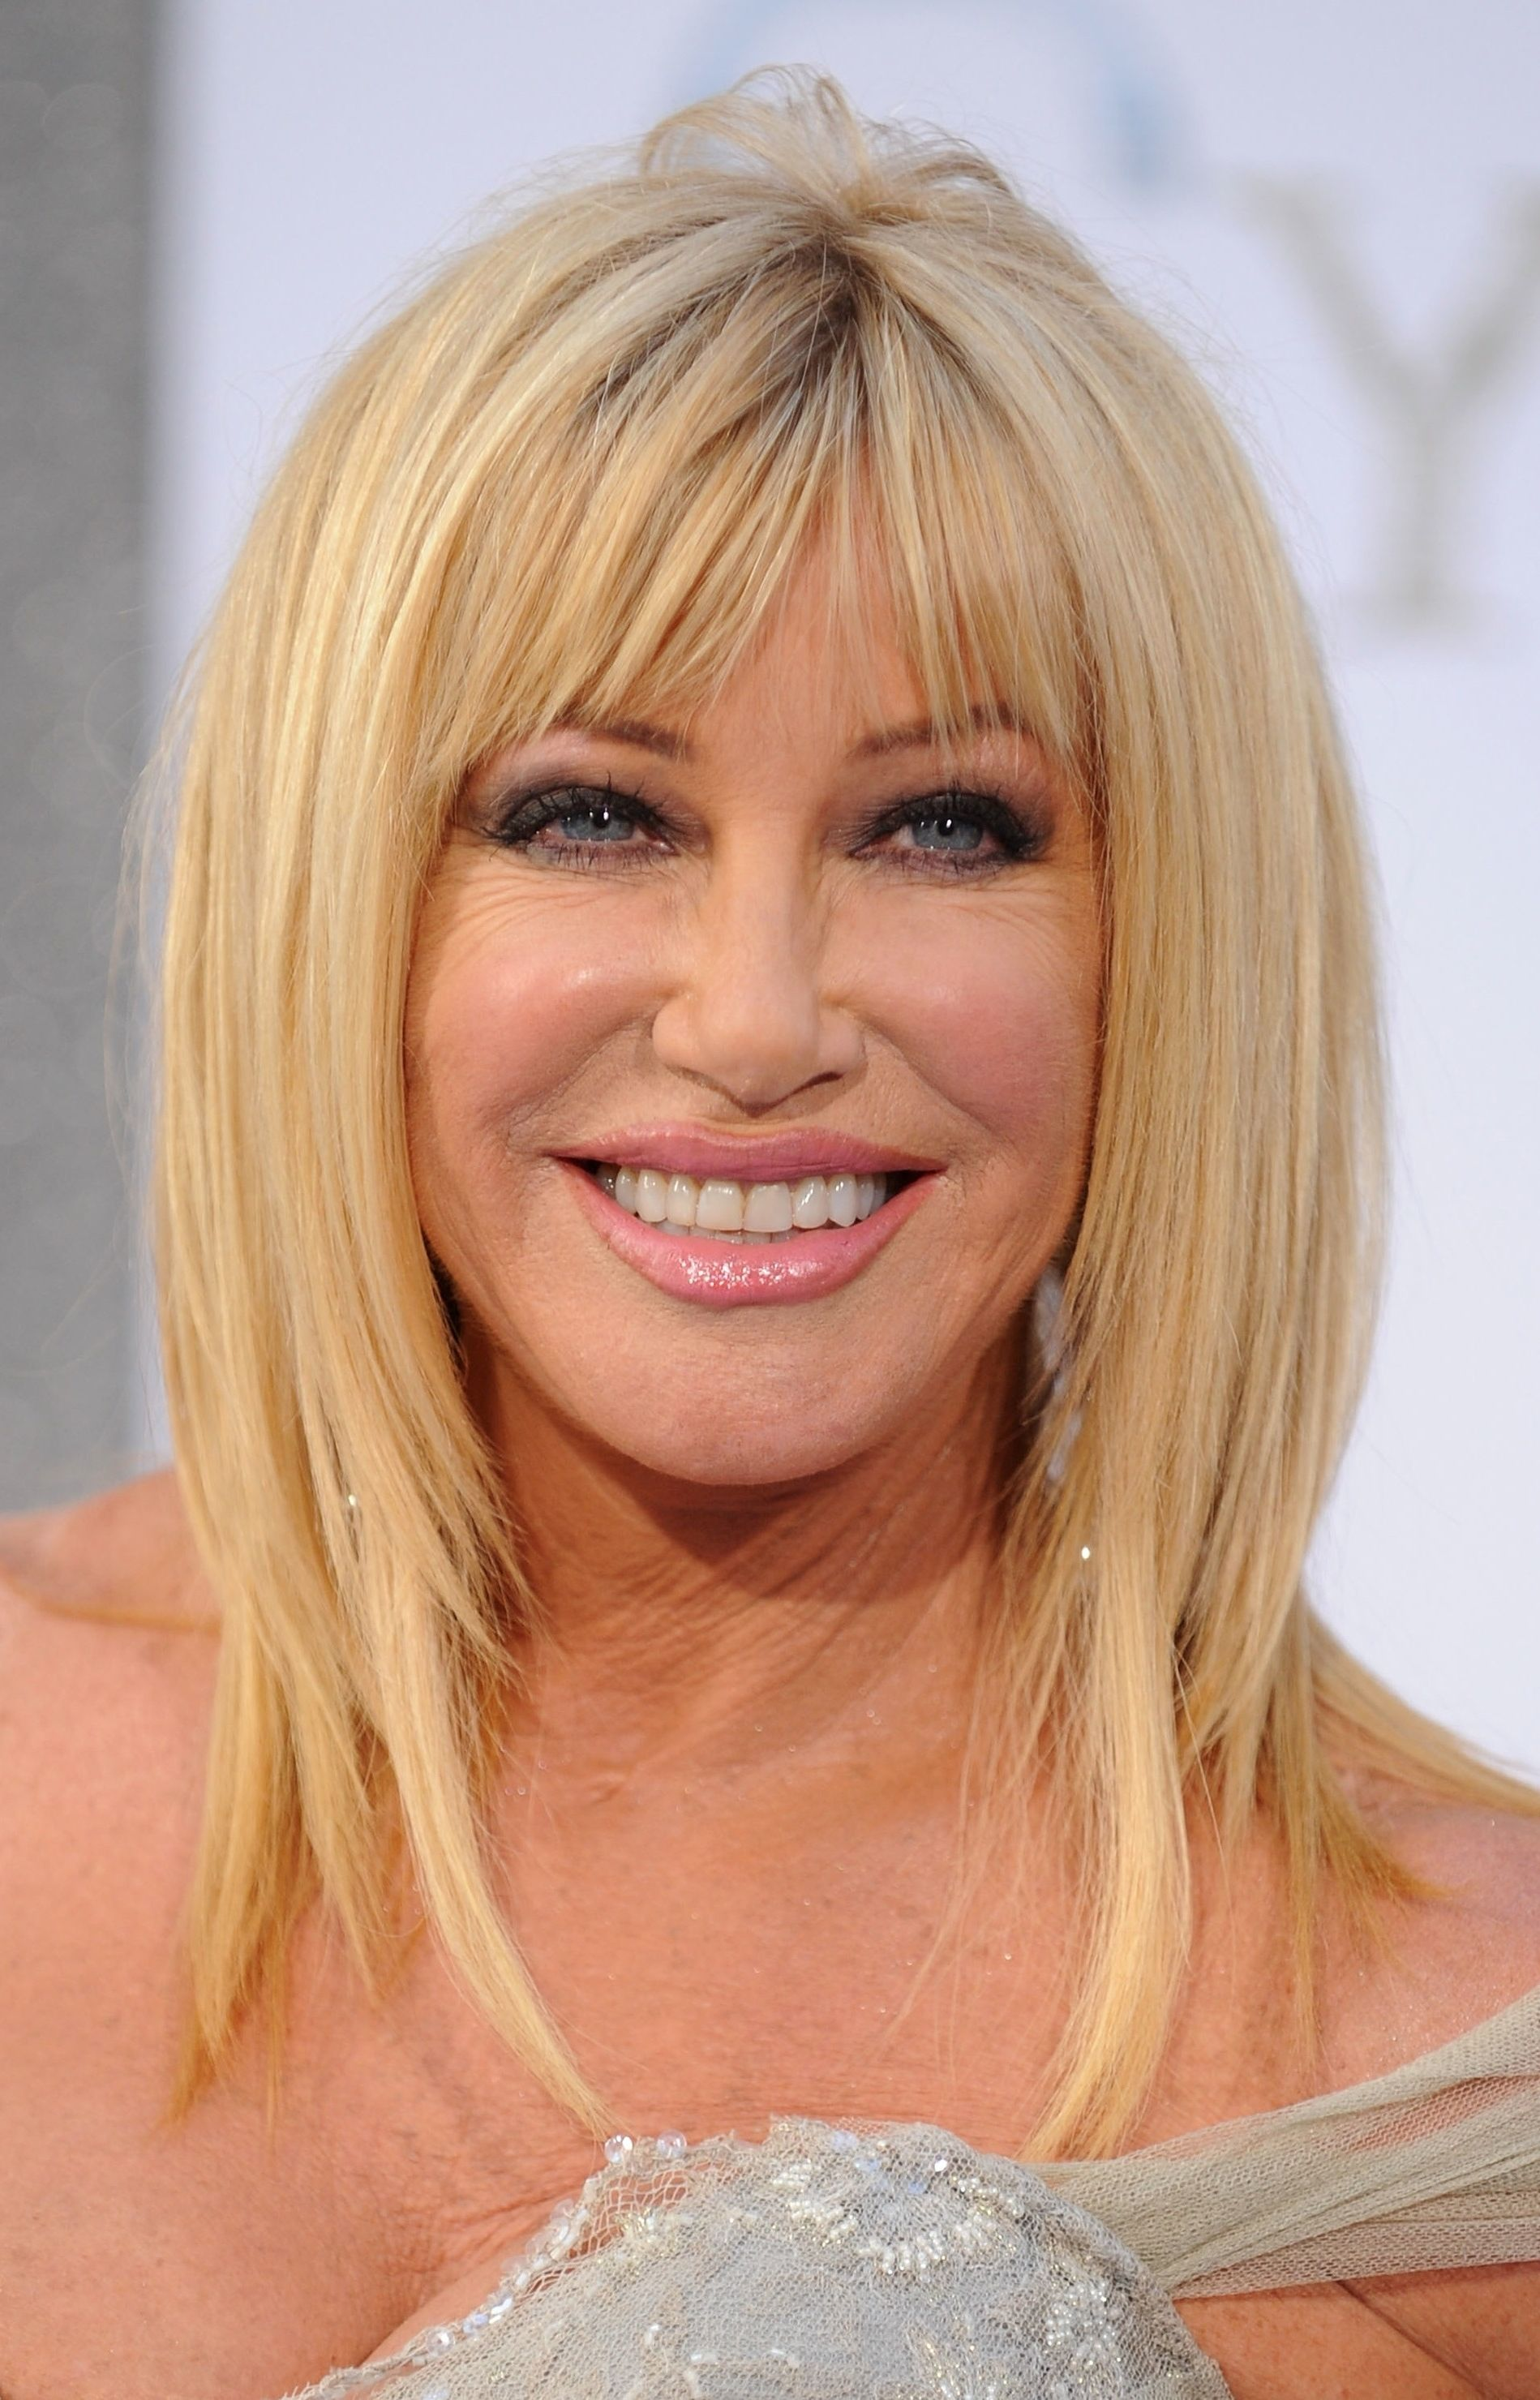 Hairstyles For Older Women With Long Faces Hairstyles For Older Women With Long Faces Hairs Long Face Hairstyles Medium Length Hair Styles Long Hair With Bangs